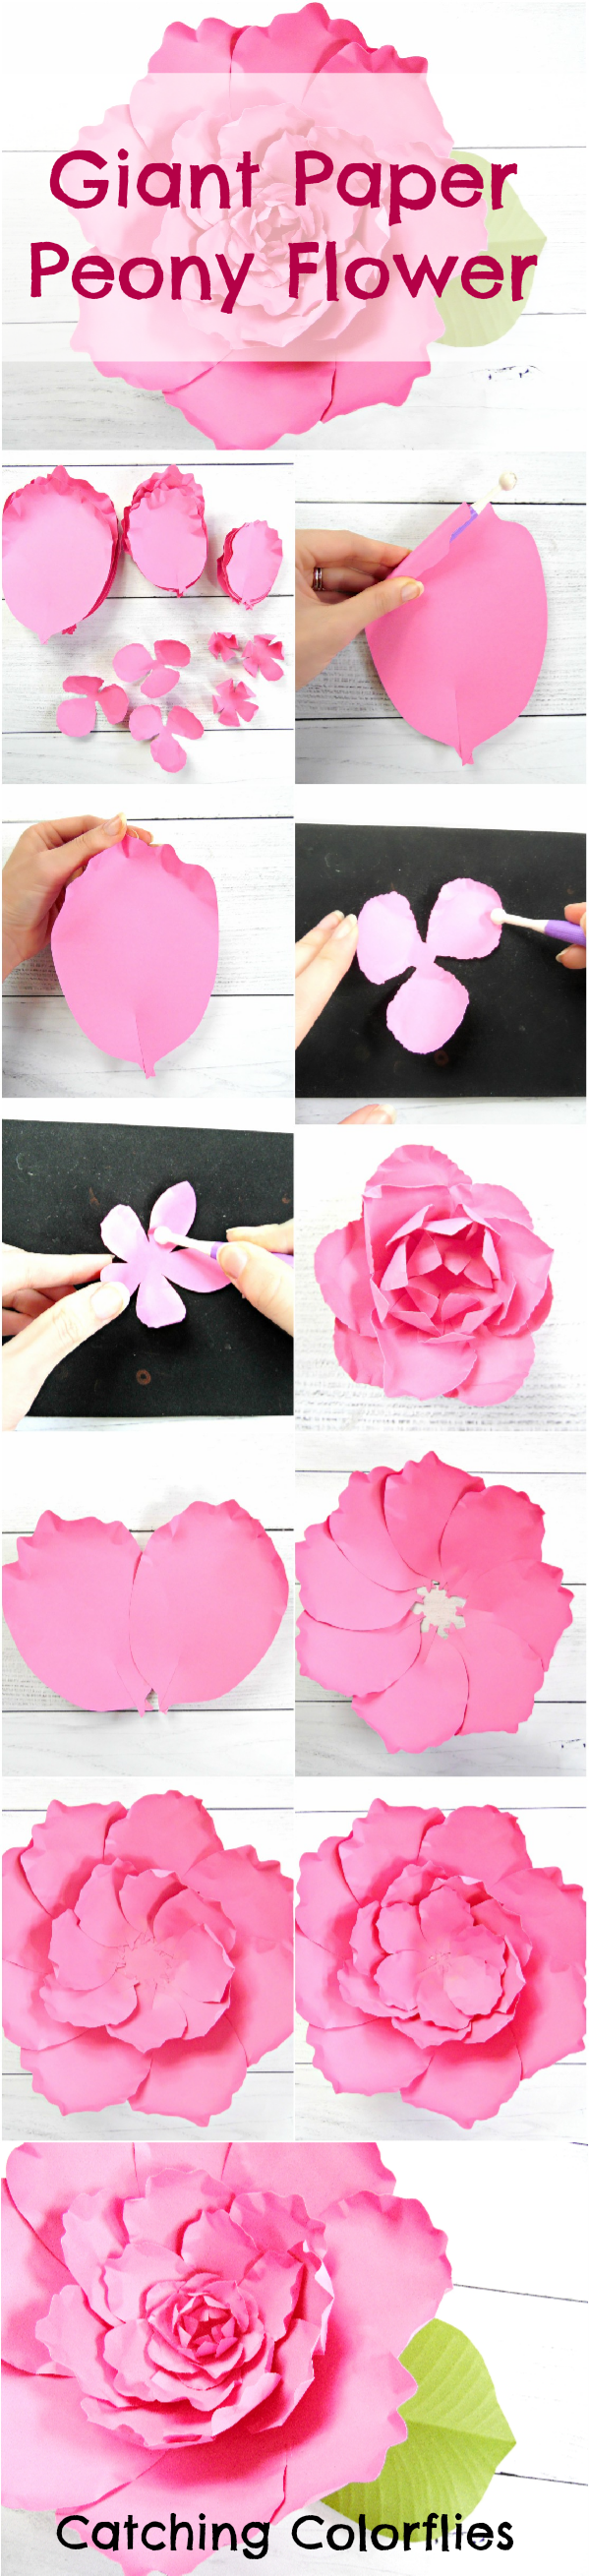 Giant paper peony flower tutorial. DIY paper flowers. Printable peony flower templates